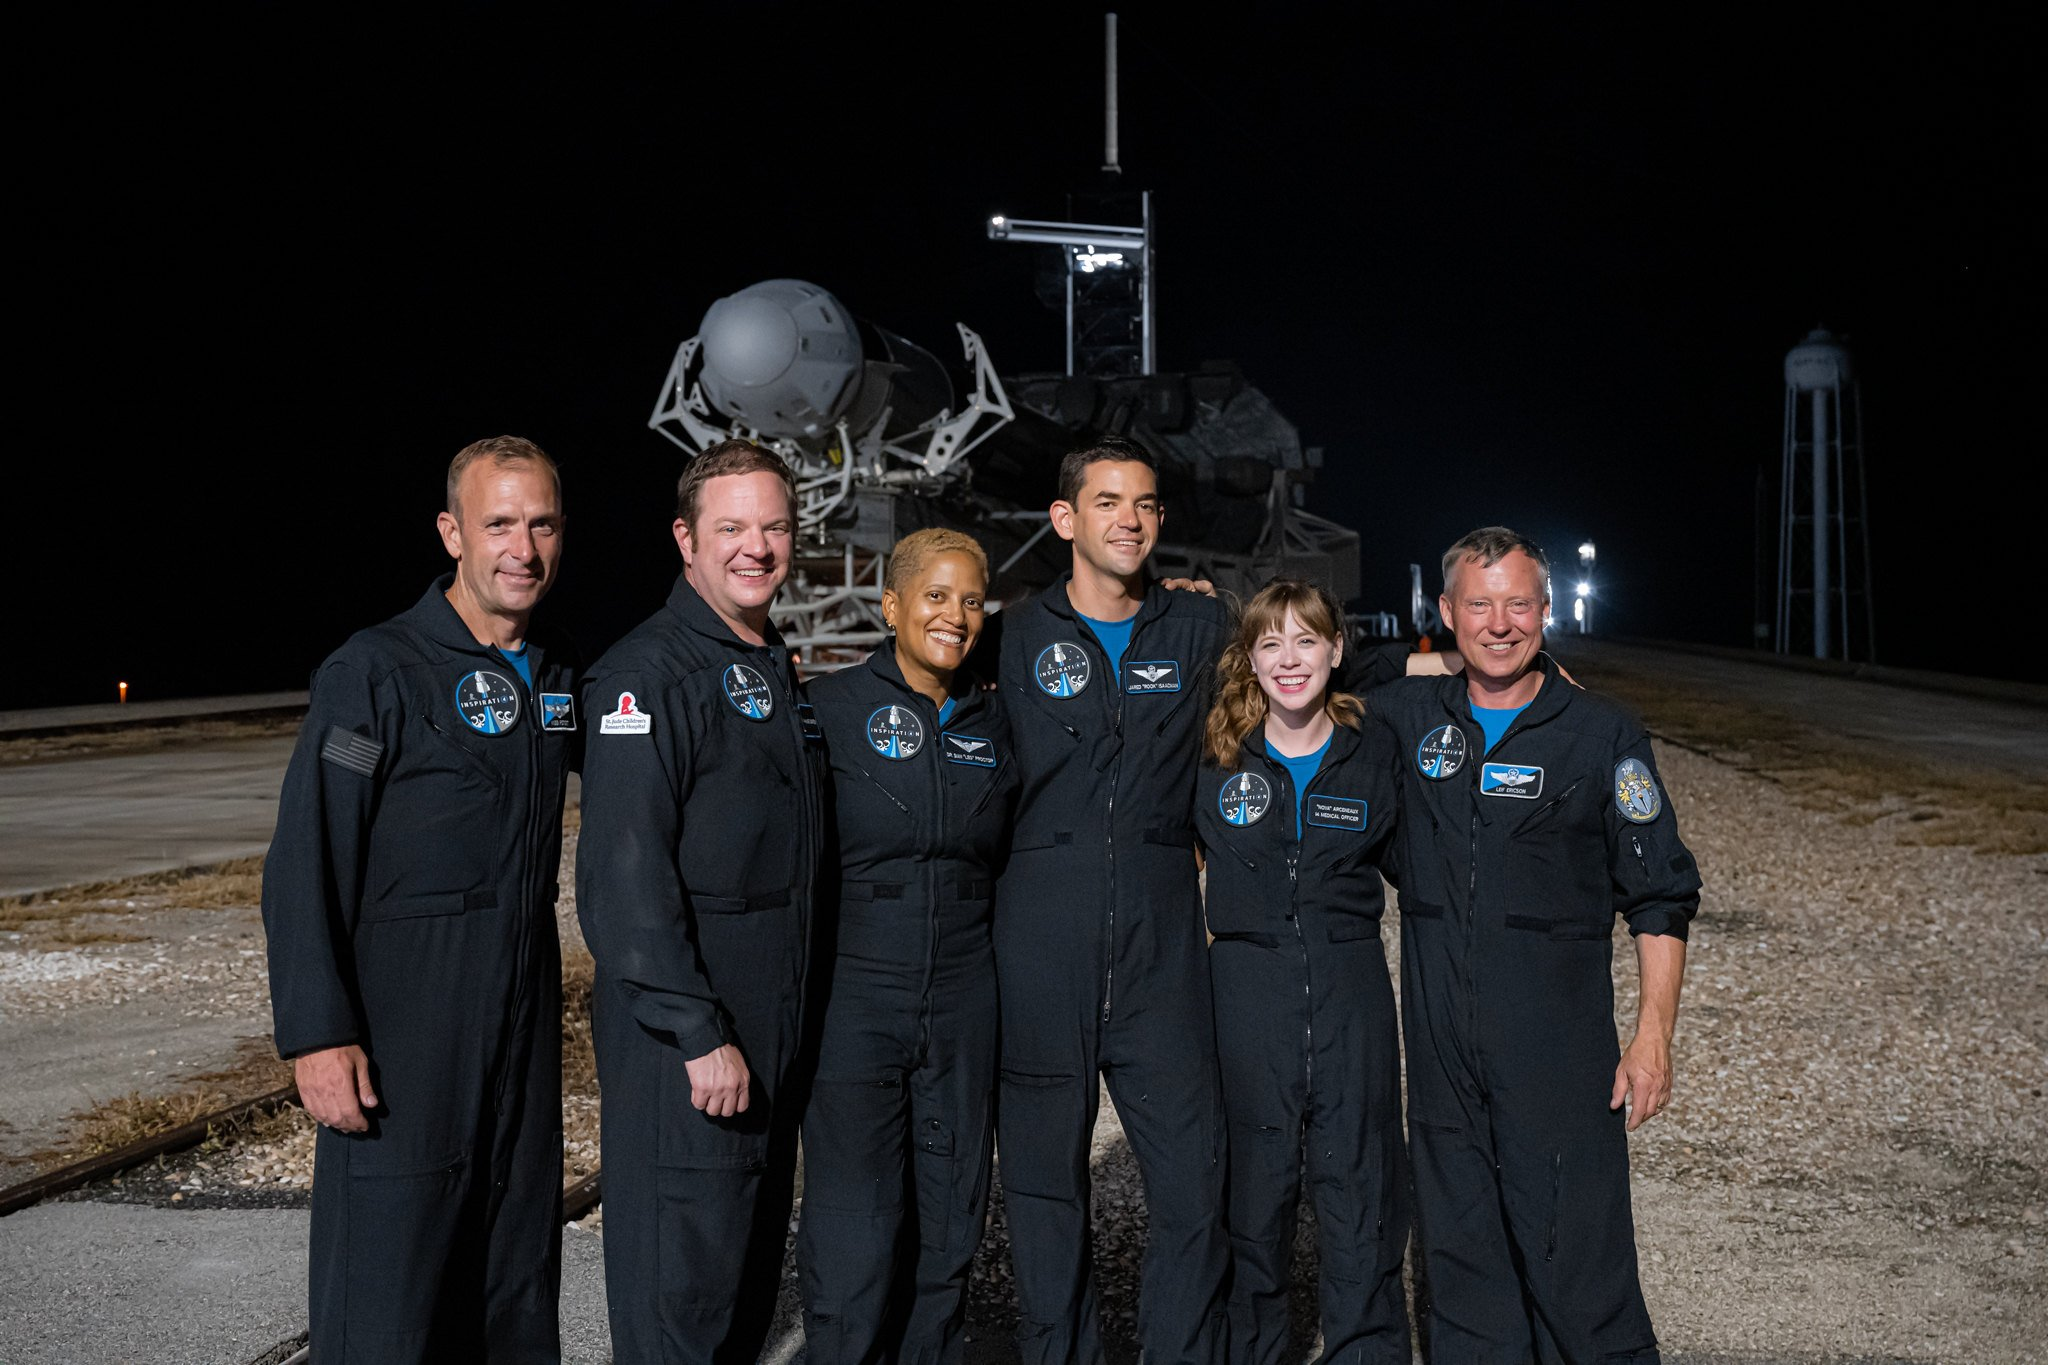 Why Inspiration4's 'all-civilian' trip to orbit represents the dawn of a second space age